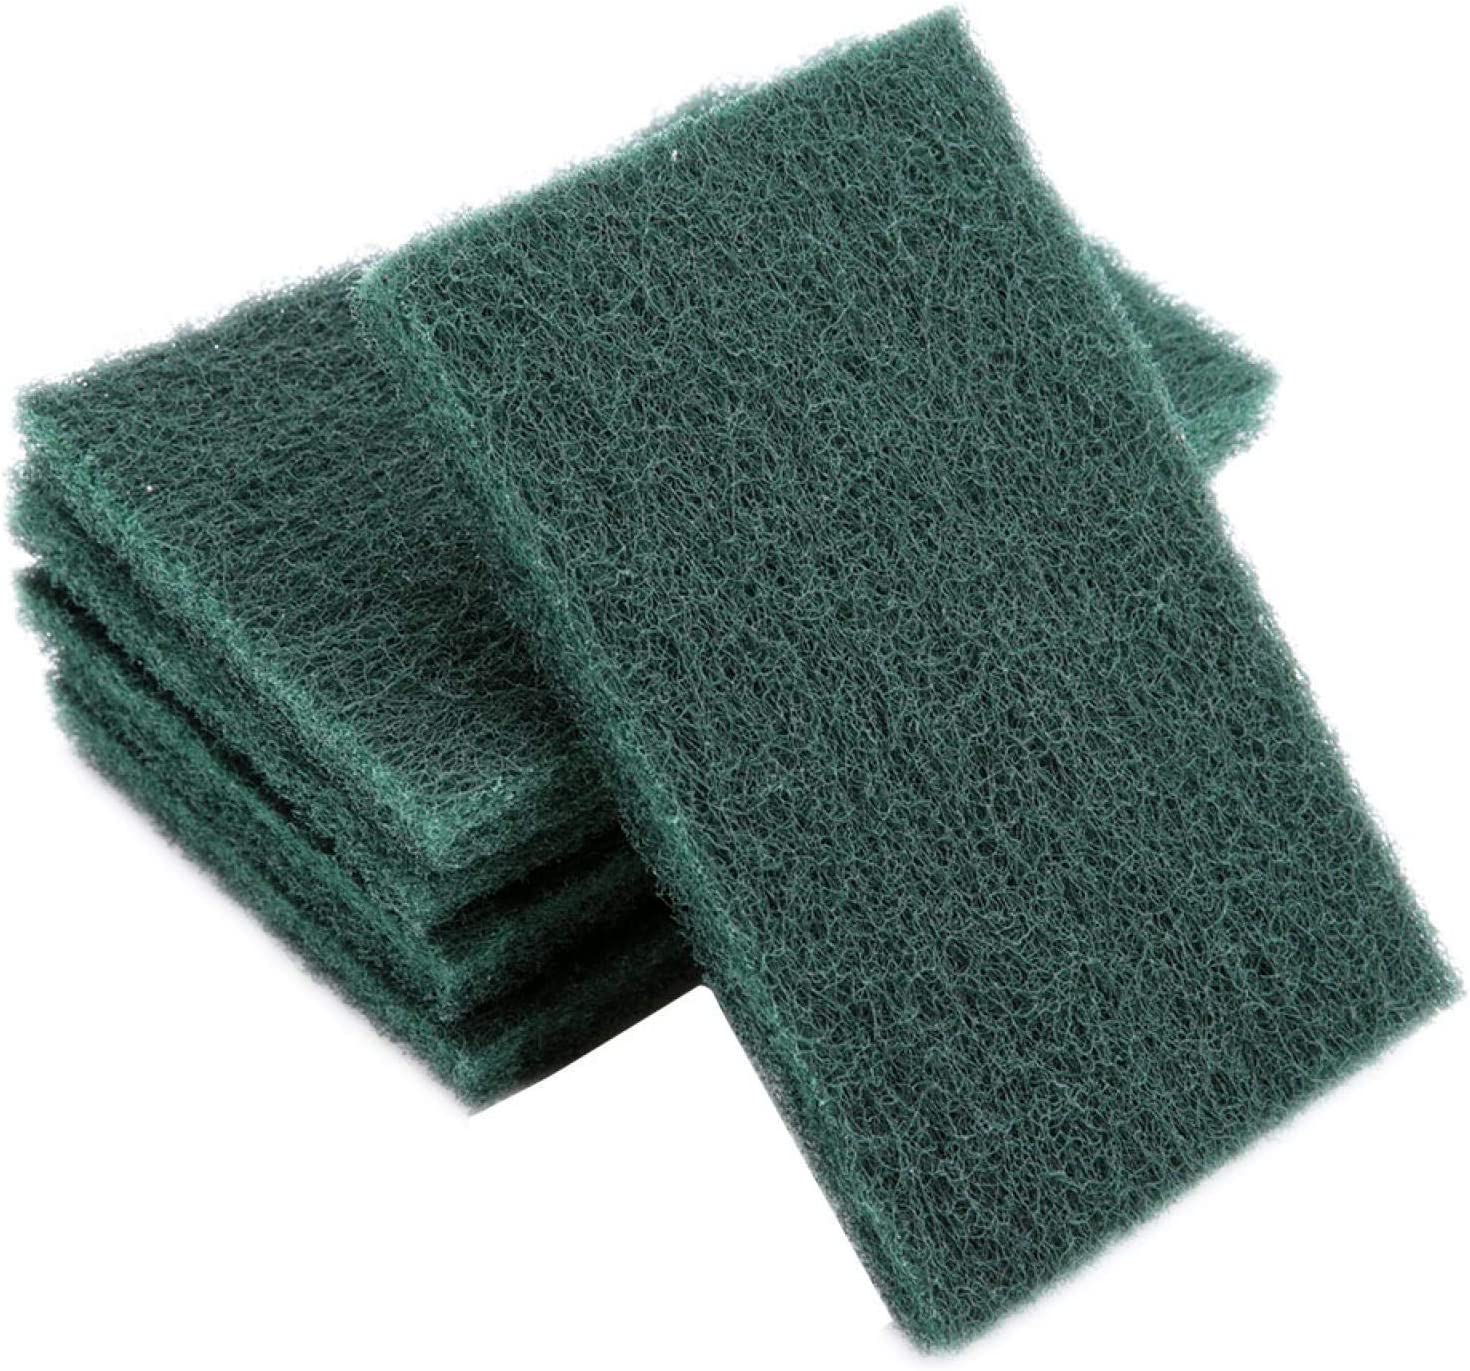 Scouring Pad Square Nylon Max 86% OFF Scourer P Industrial Bargain sale for